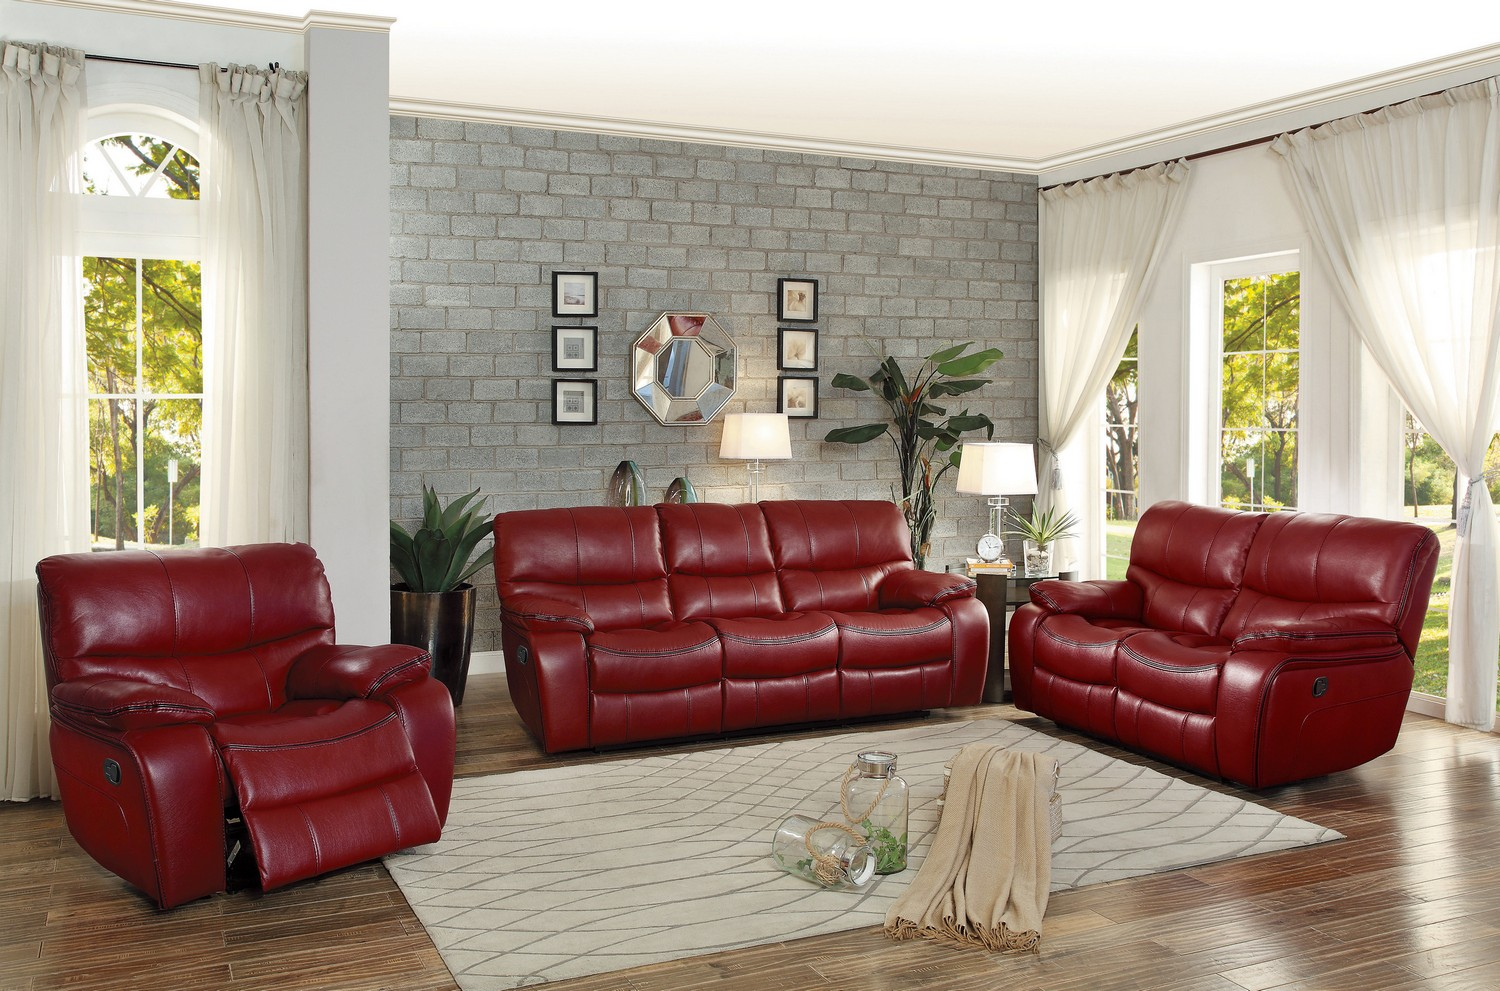 Homelegance Pecos Reclining Sofa Set - Leather Gel Match - Red